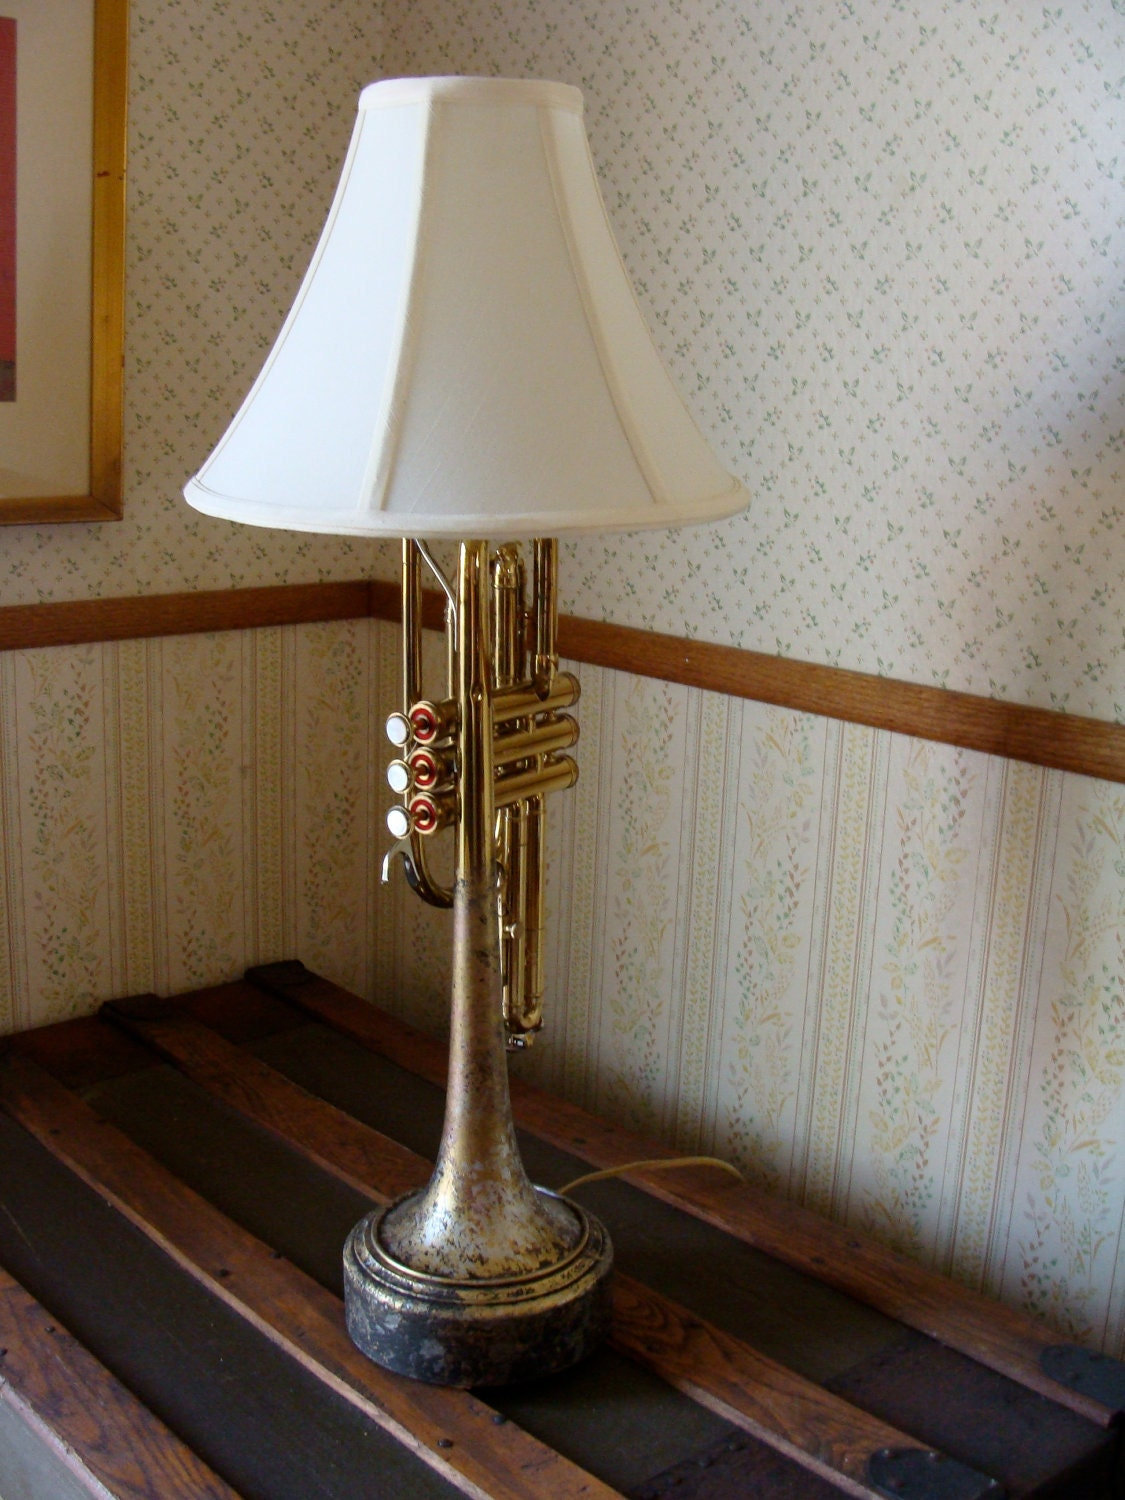 Vintage Trumpet Upcycled To A Table Lamp